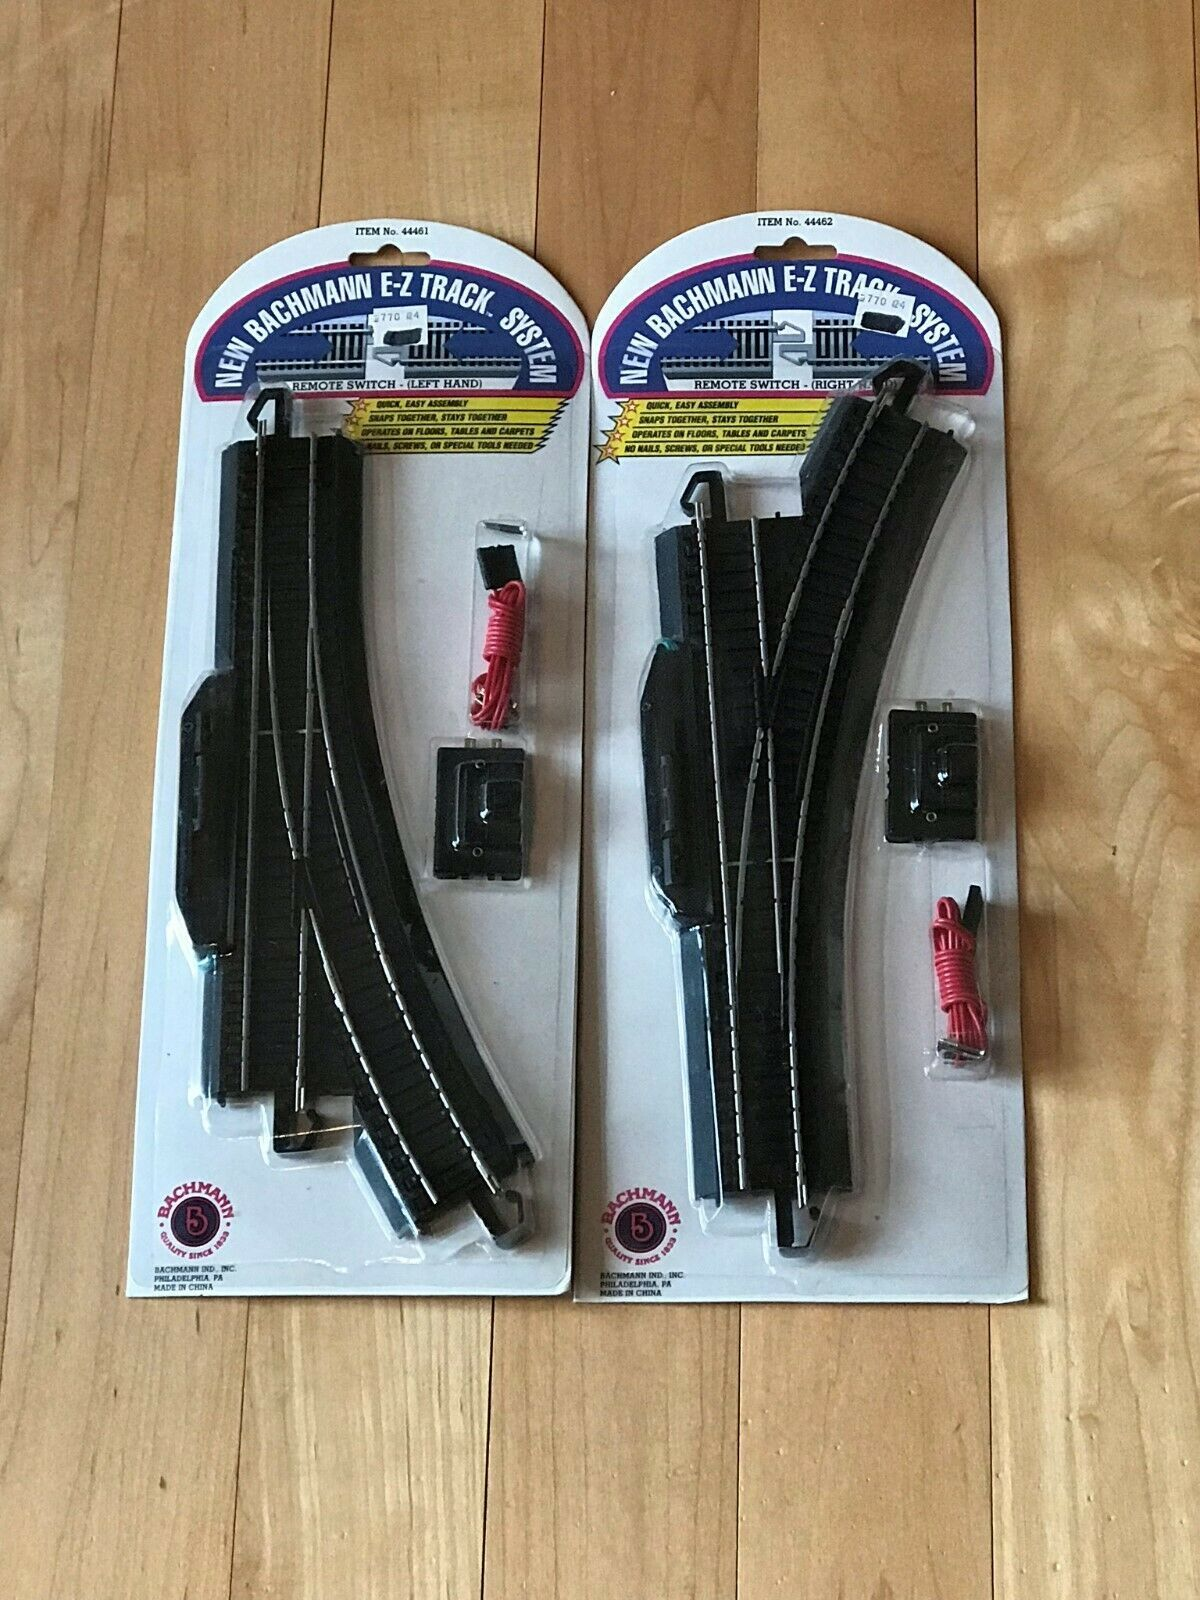 track 97168 ho scale bachmann e z train track left and right remote switch 44461 44462 new buy it now only 50 on ebay track scale bachmann train  [ 1200 x 1600 Pixel ]